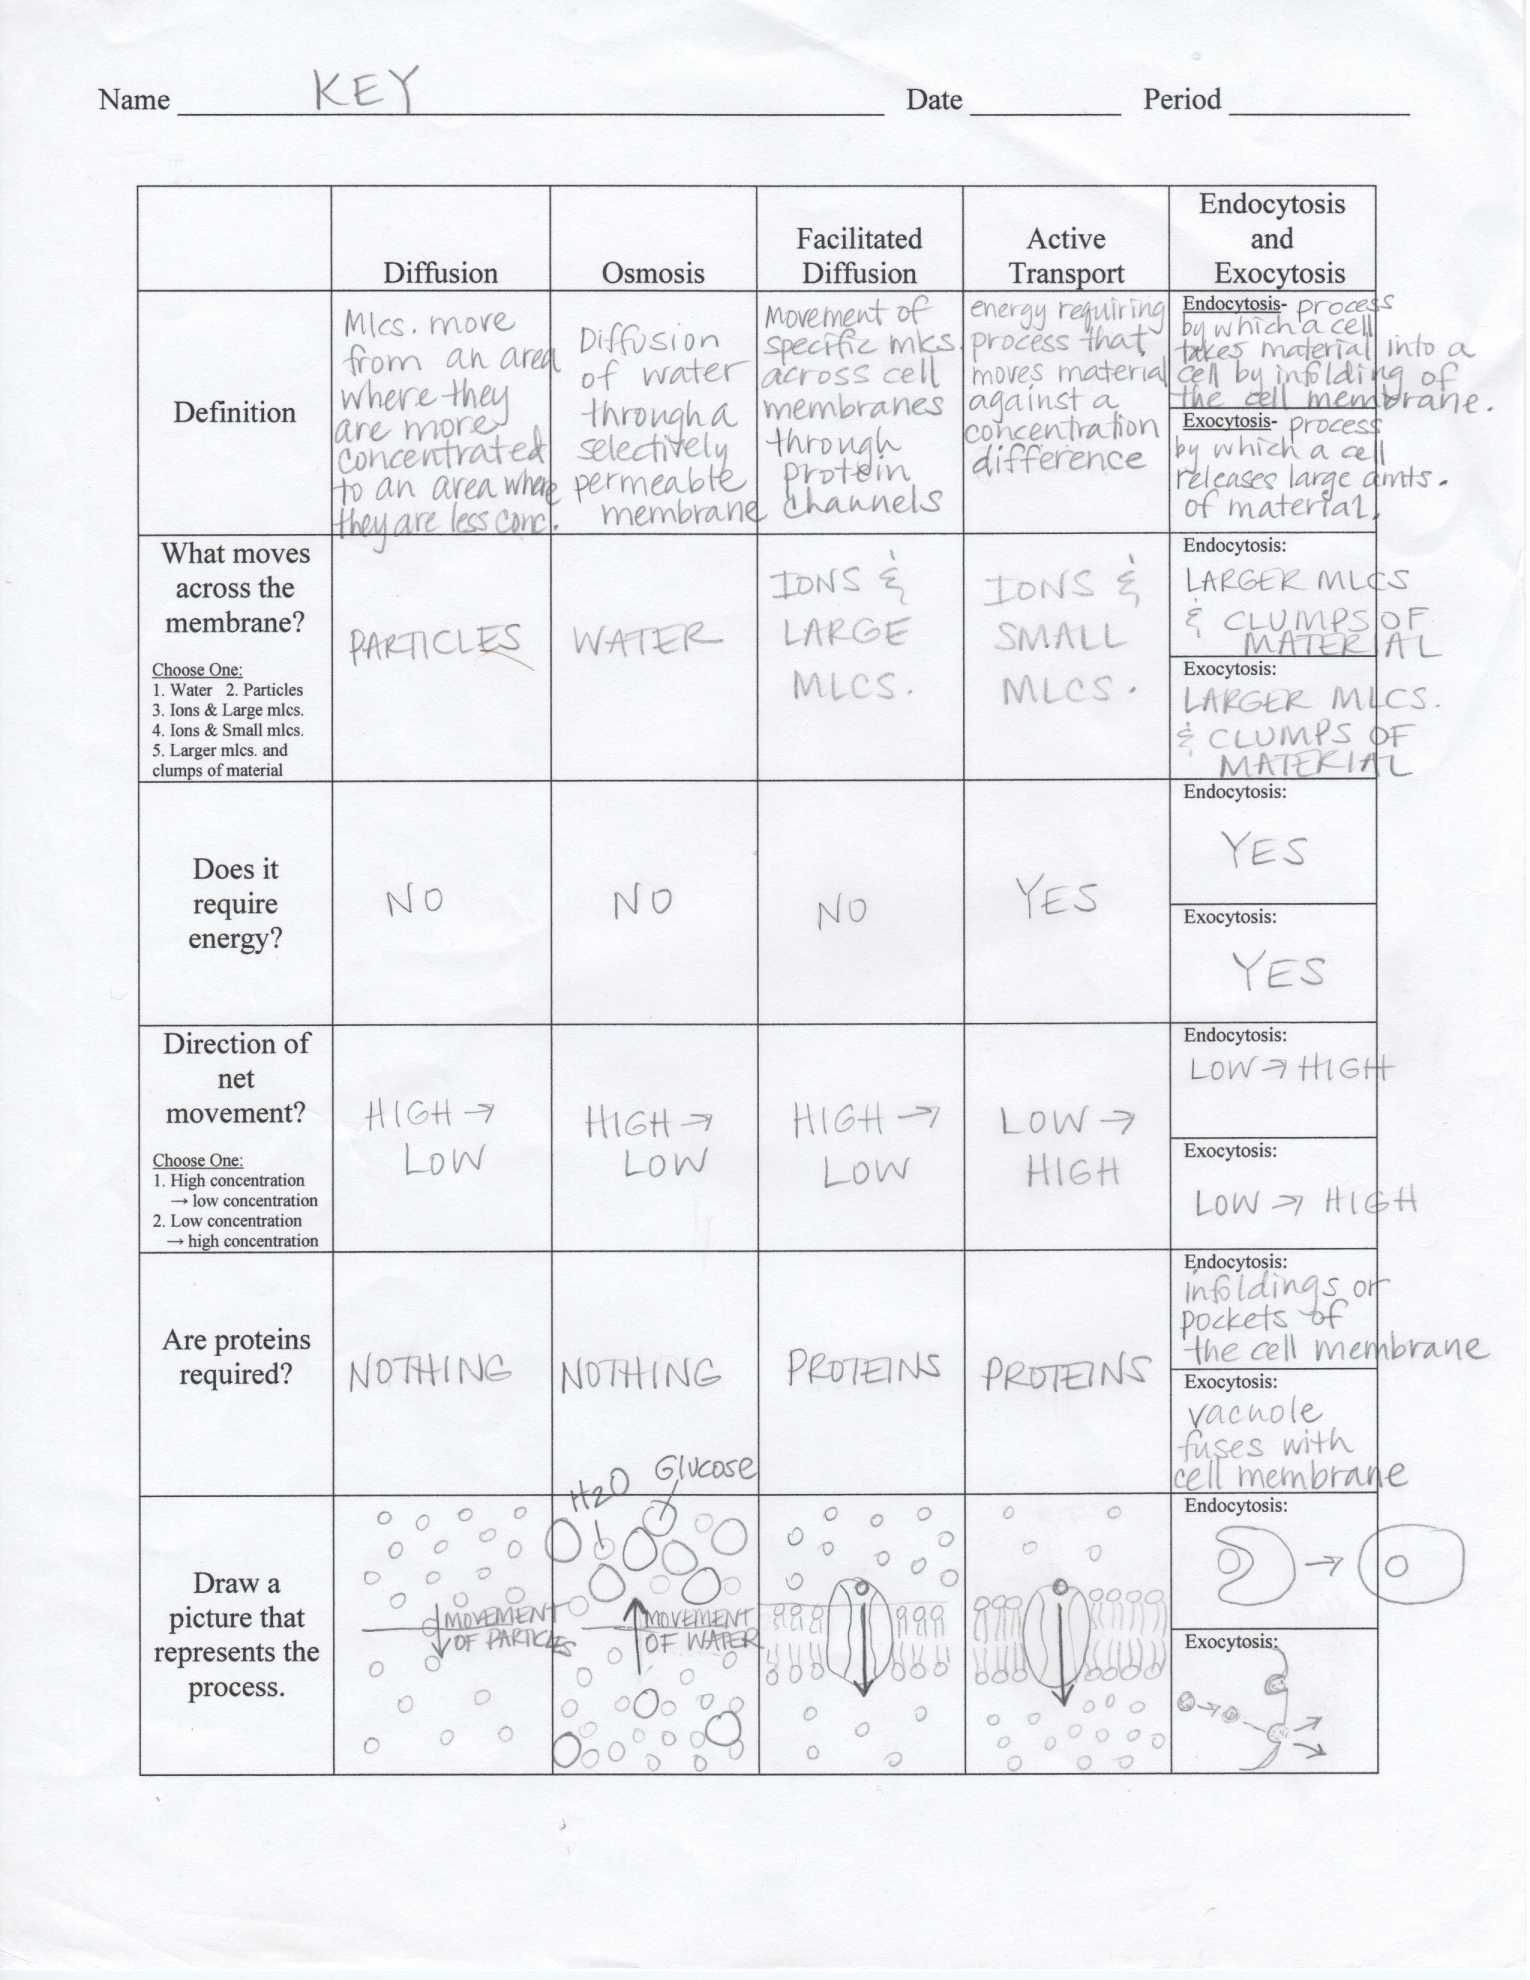 Cell Membrane Images Worksheet Answers Transport Across Cell Membrane Worksheet Nidecmege